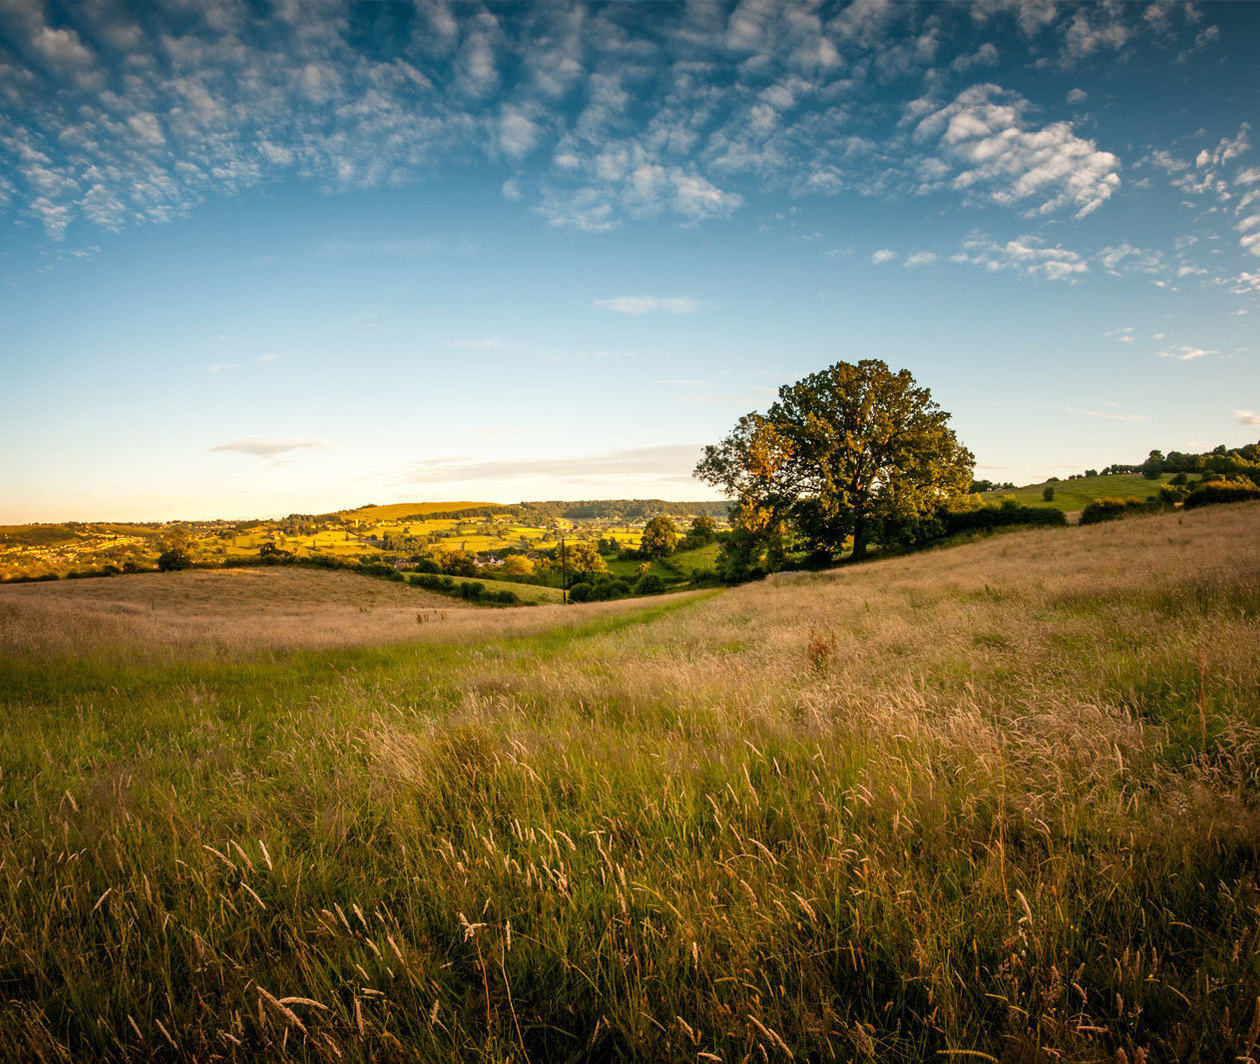 Valuing Nature: Should We Put a Price on Ecosystems?